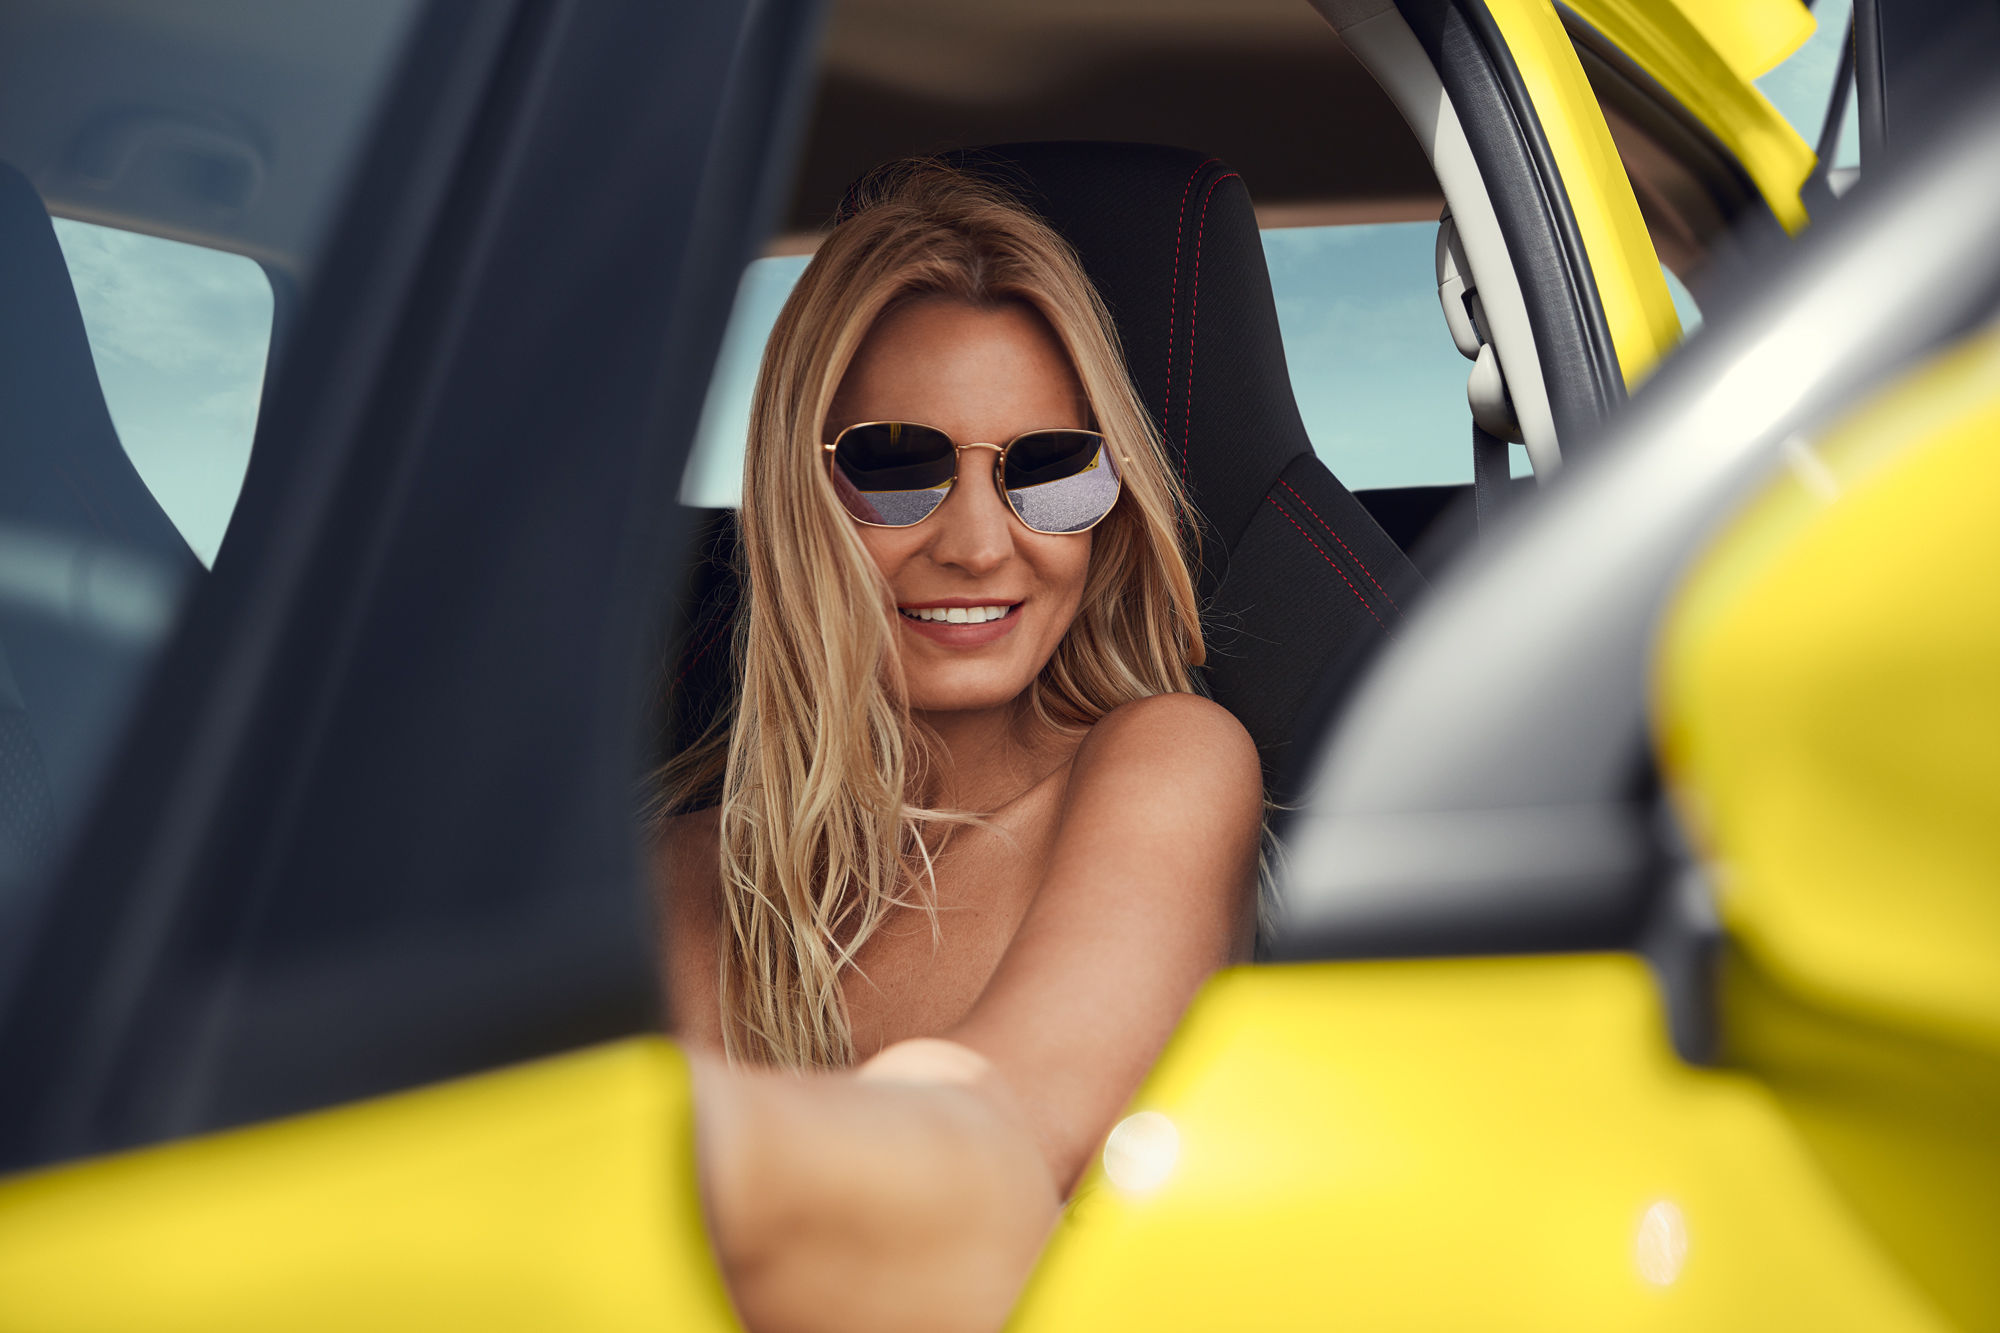 CHRISTA KLUBERT PHOTOGRAPHERS: JOEL MICAH MILLER ON TOUR WITH SUZUKI FOR PLAYBOY